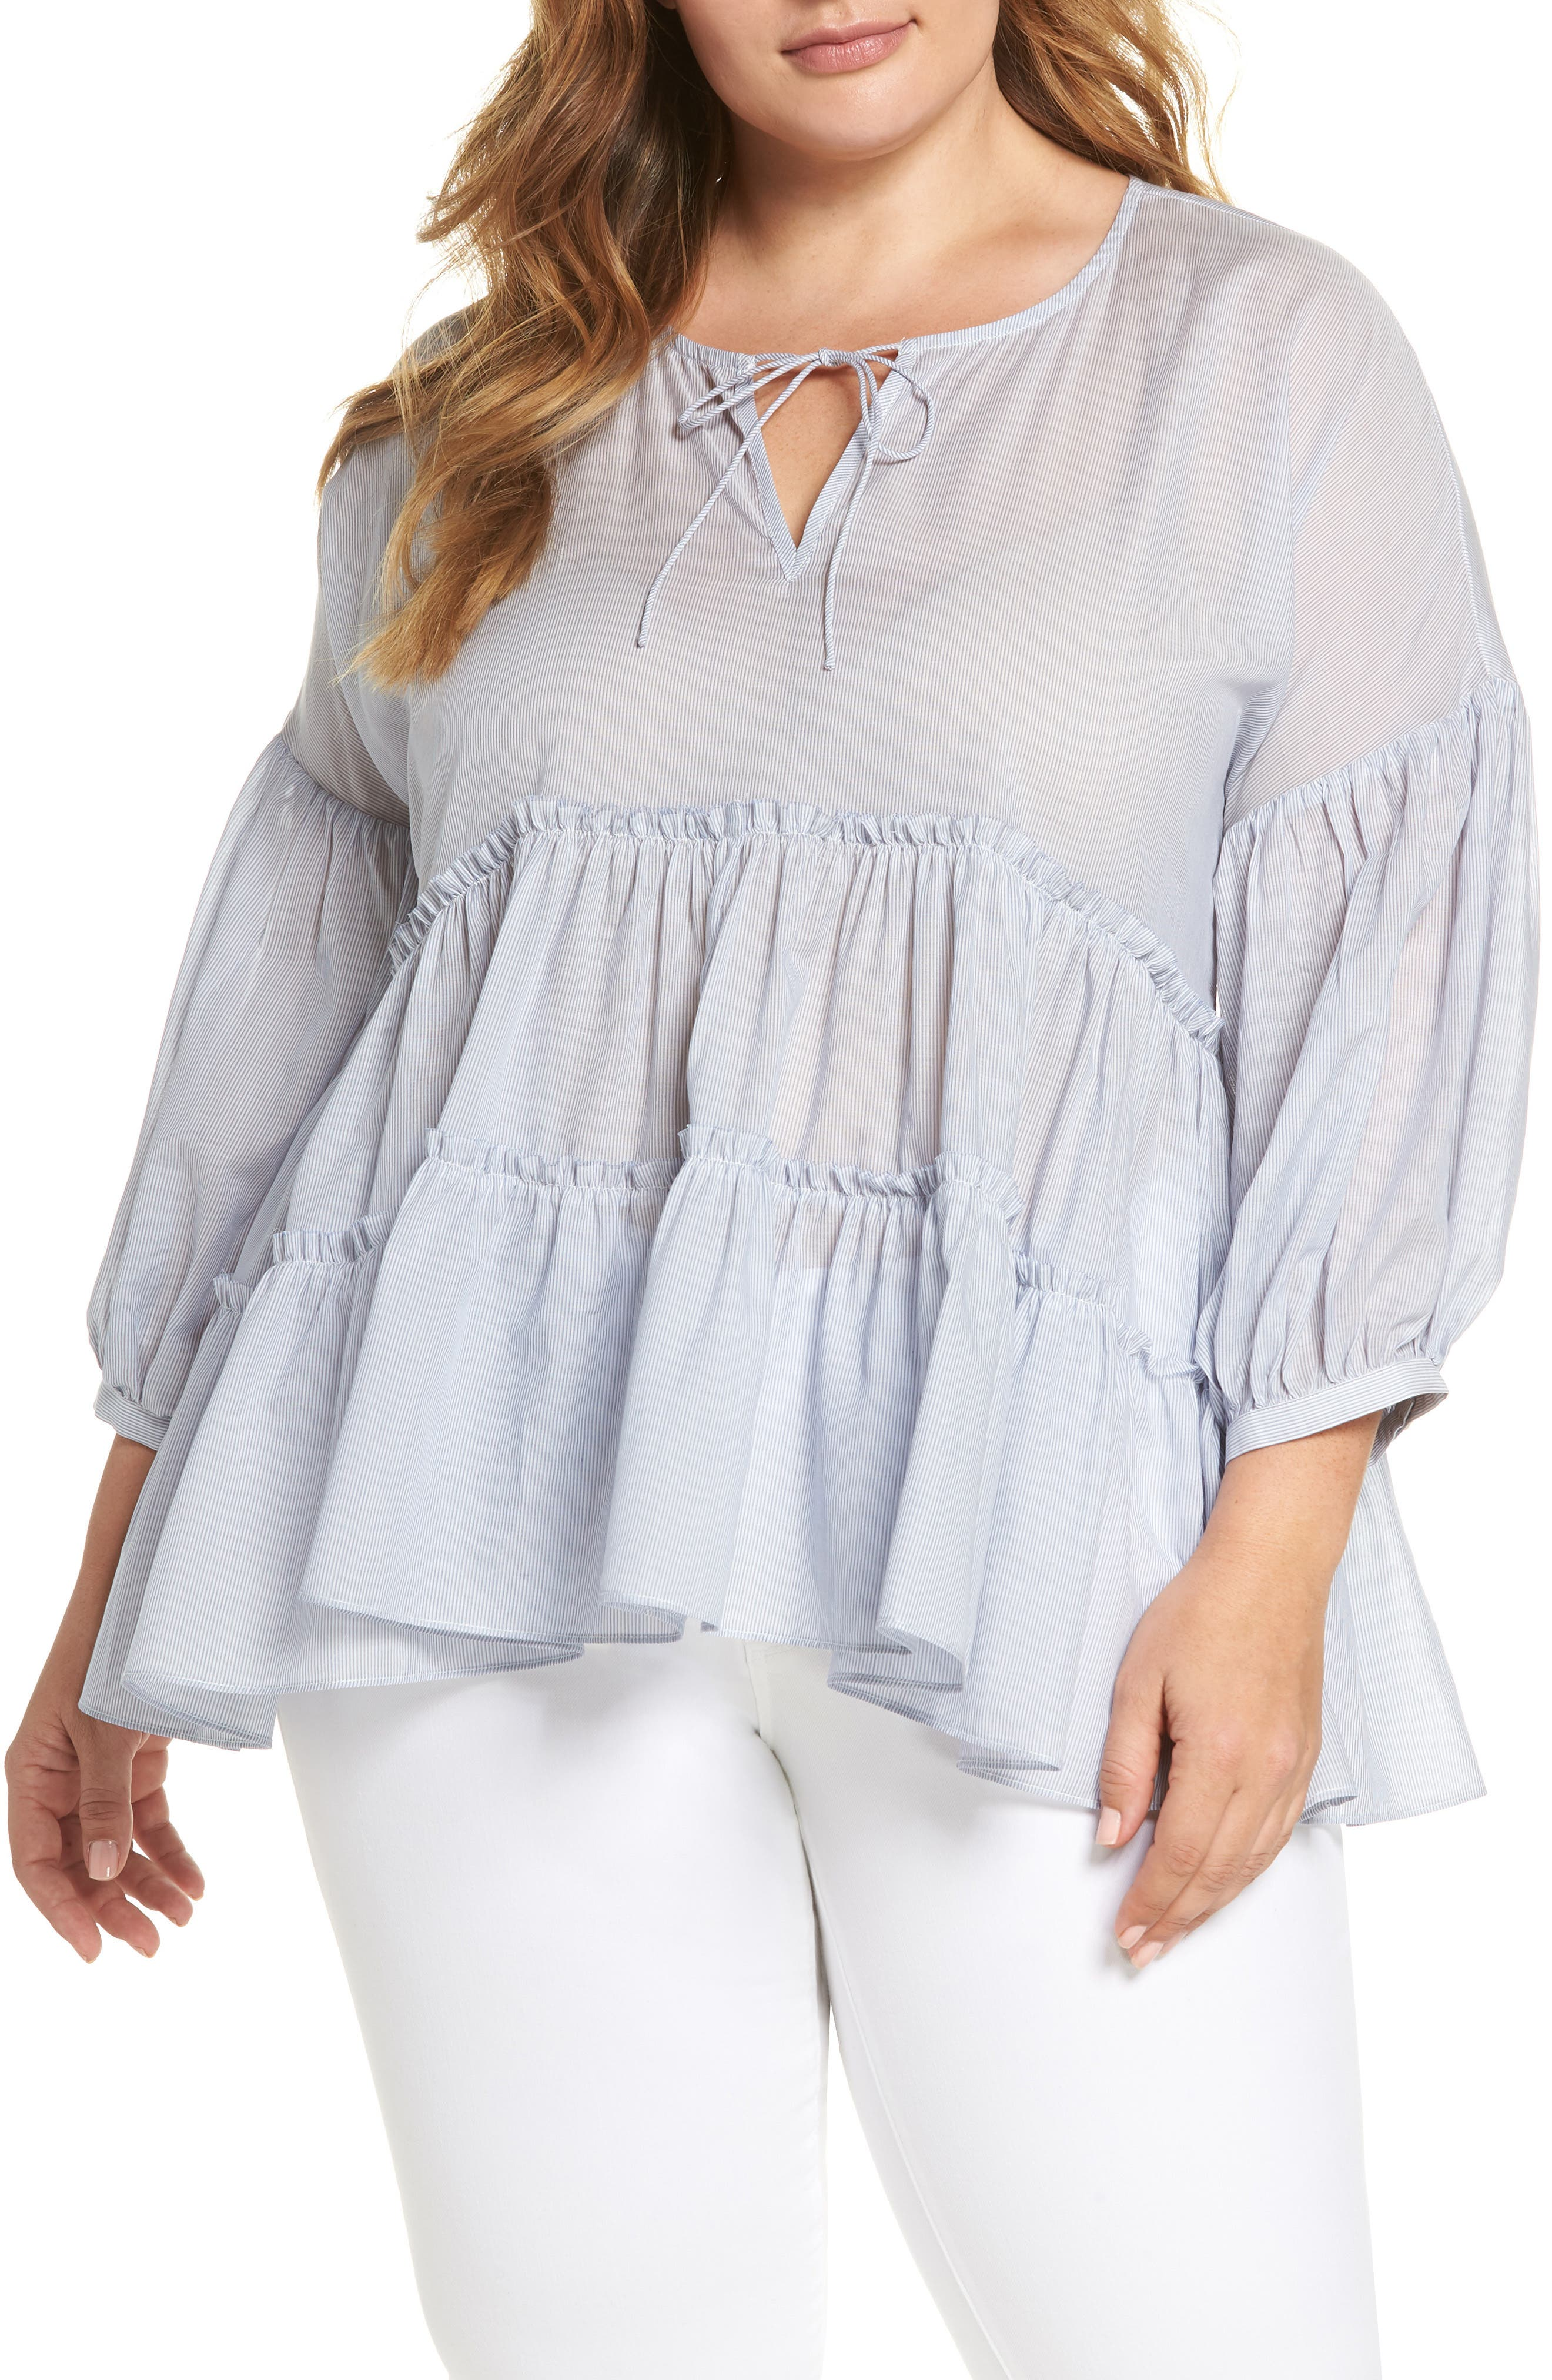 Main Image - Lucky Brand Stripe Tie Neck Tiered Top (Plus Size)